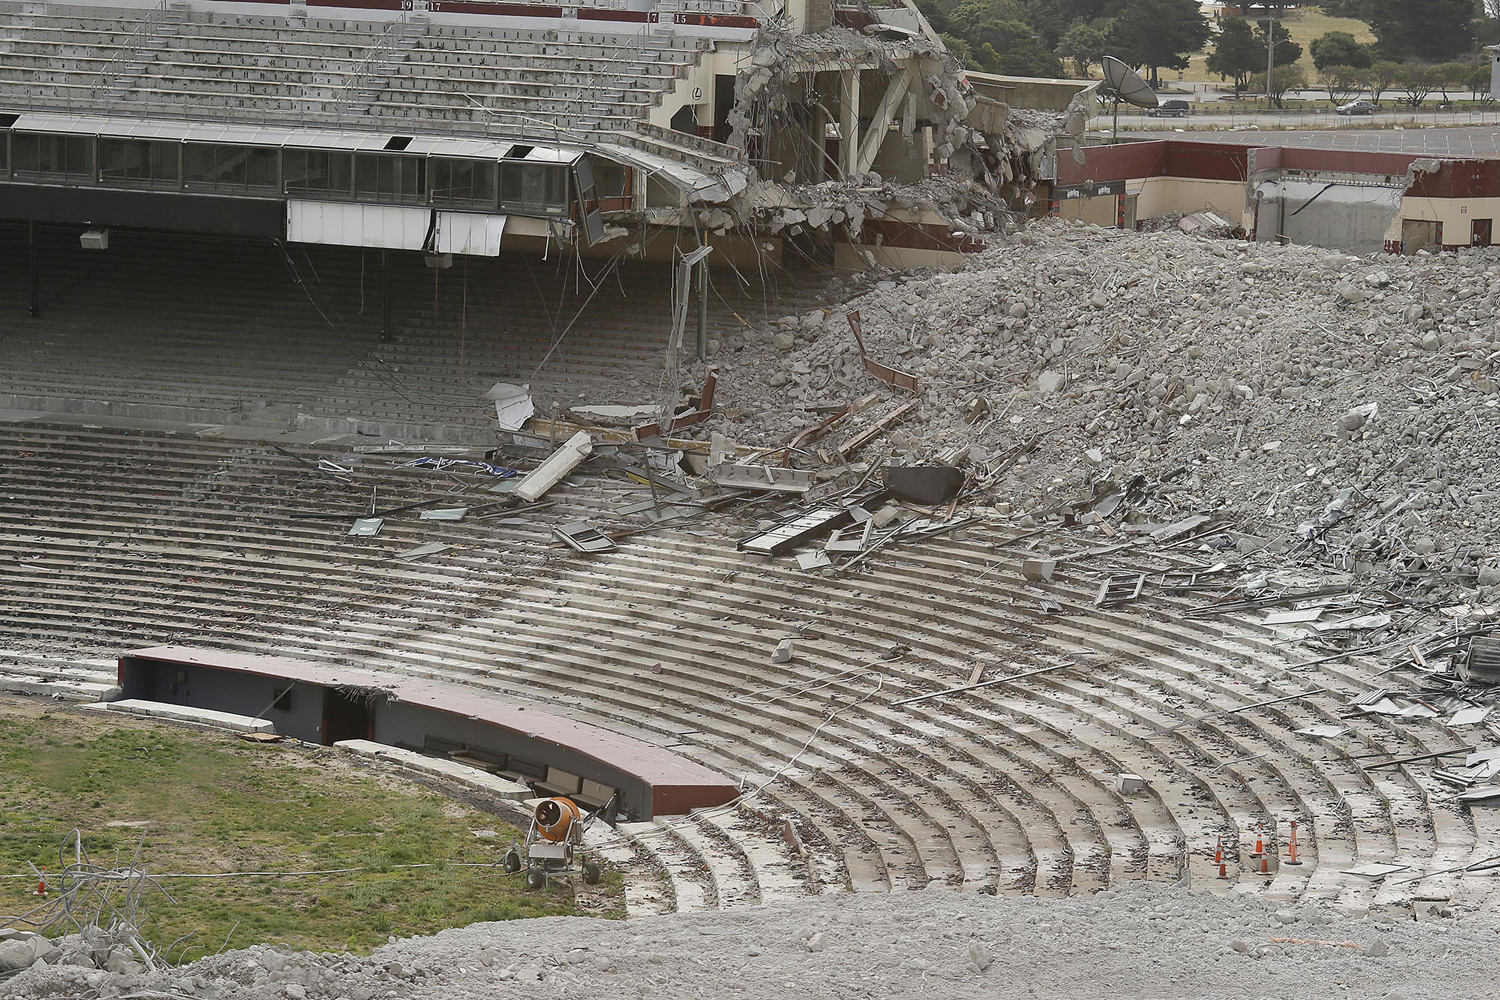 What was once the San Francisco Giants dugout still remains as demolition continues at Candlestick Park on May 14, 2015.